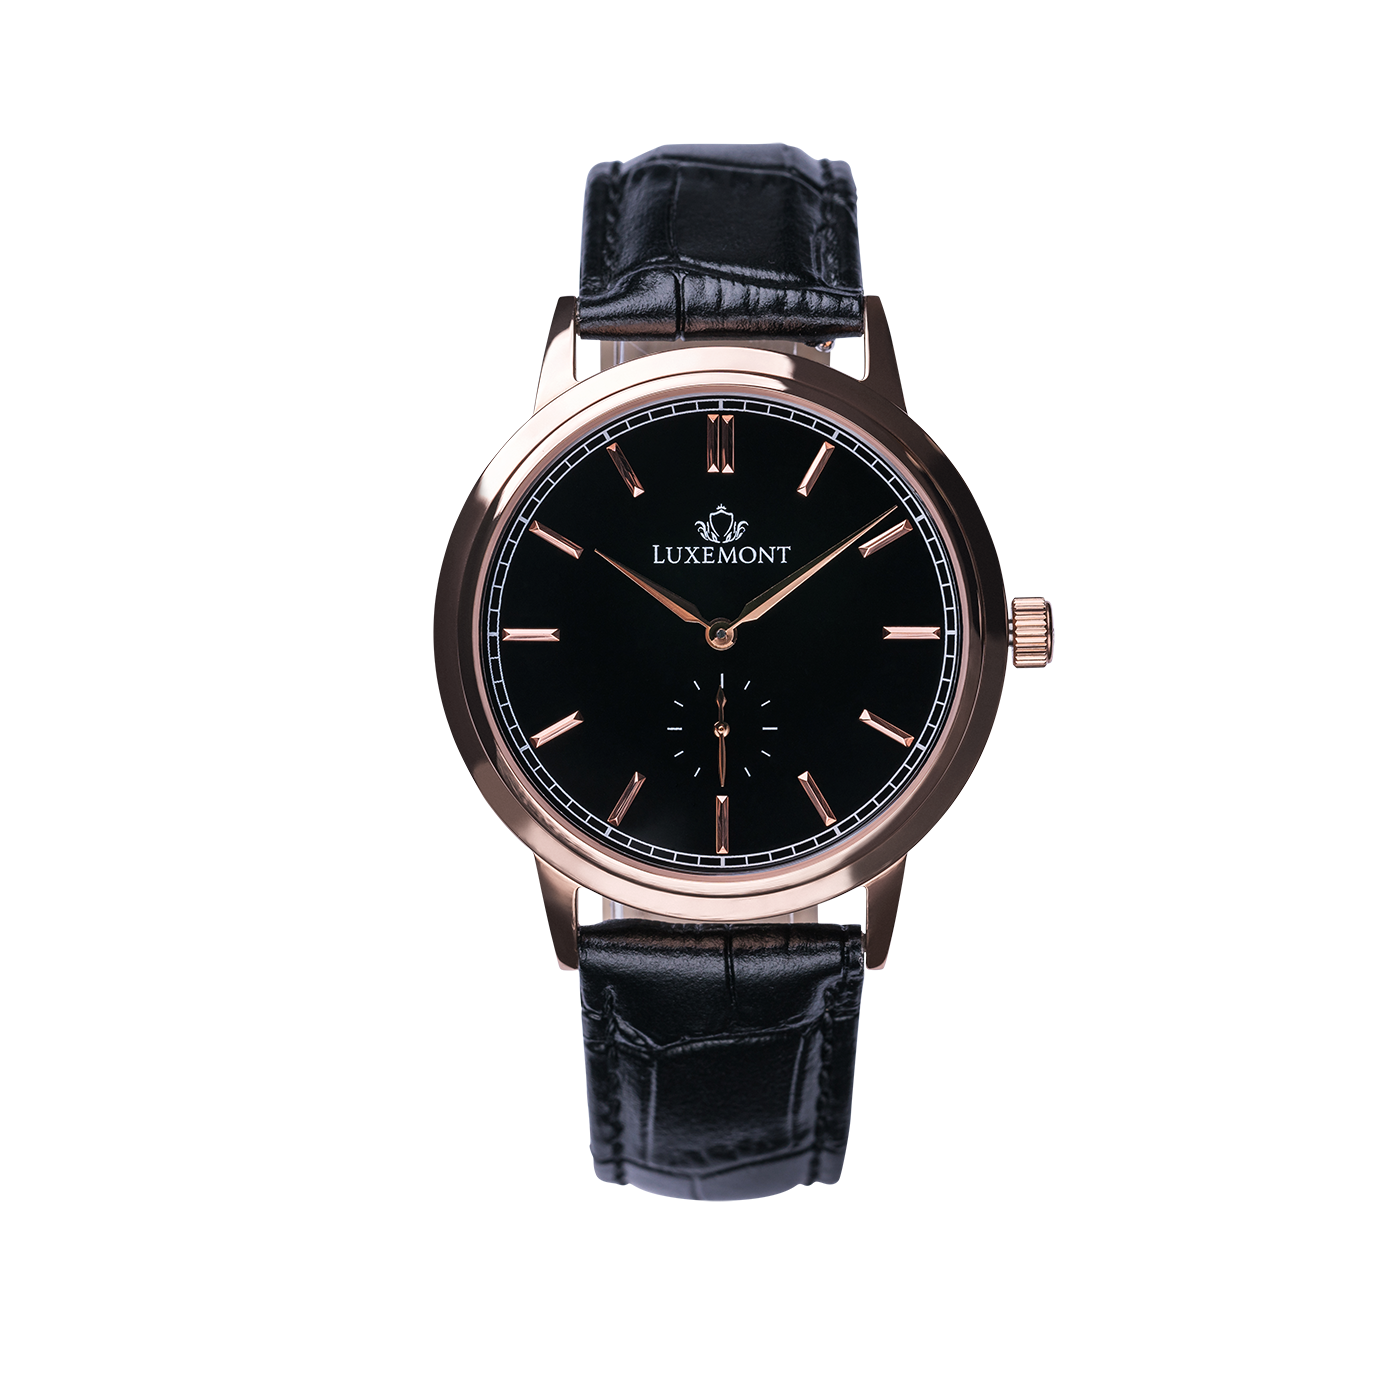 luxemont maestro rose gold black dial front view